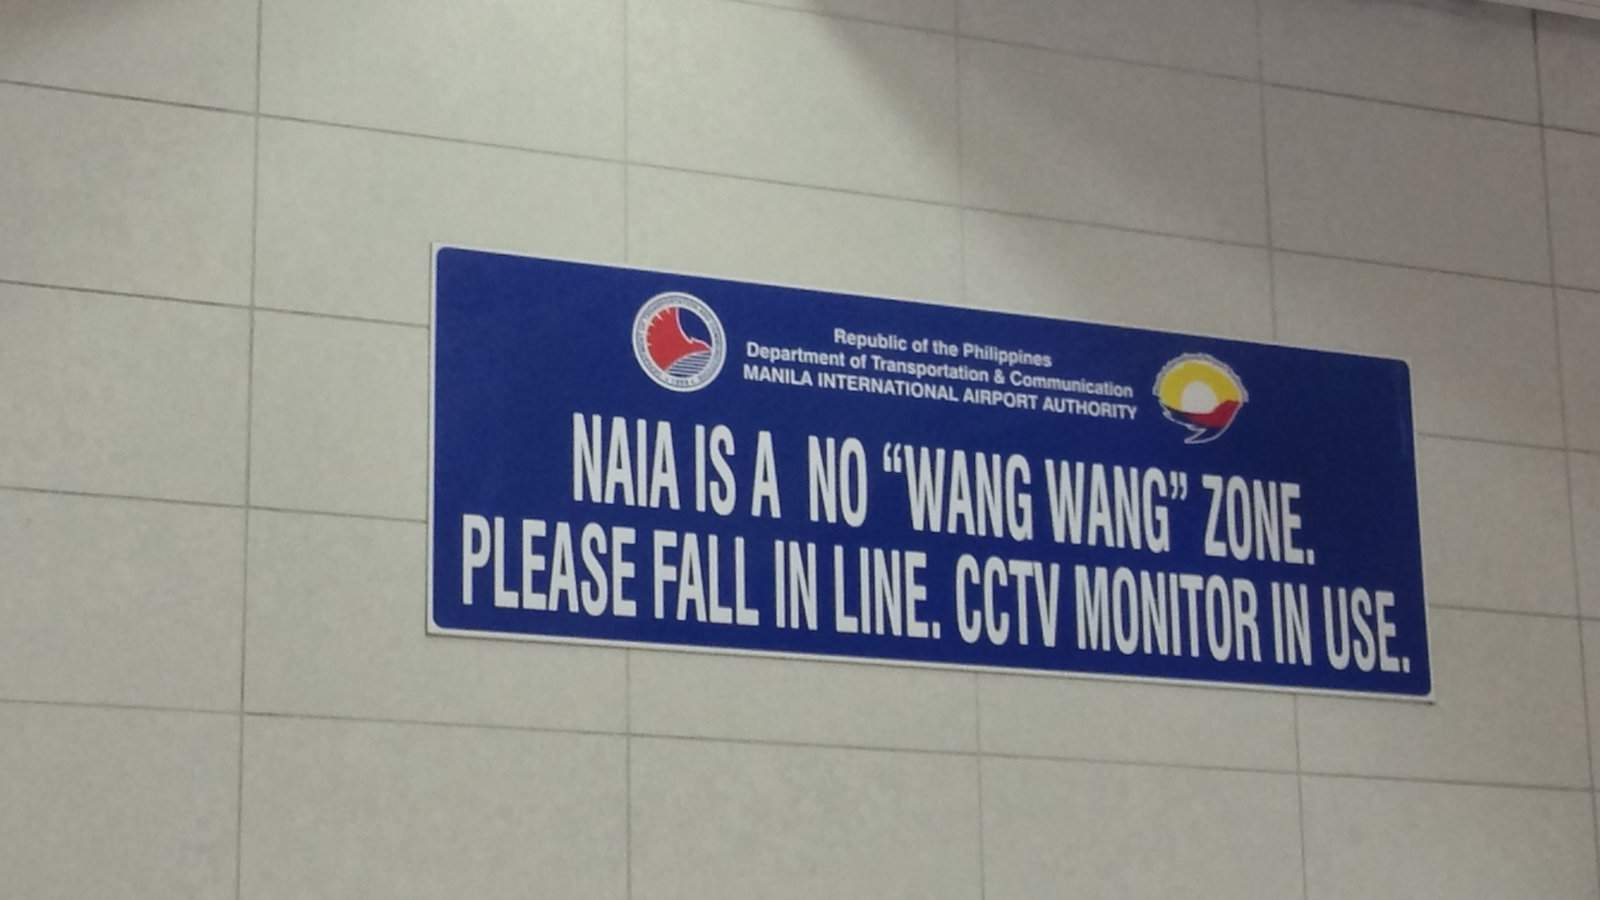 """While it may seem to be something naughty, a """"no wang wang"""" sign in Malaysia means don't cute the queue!"""